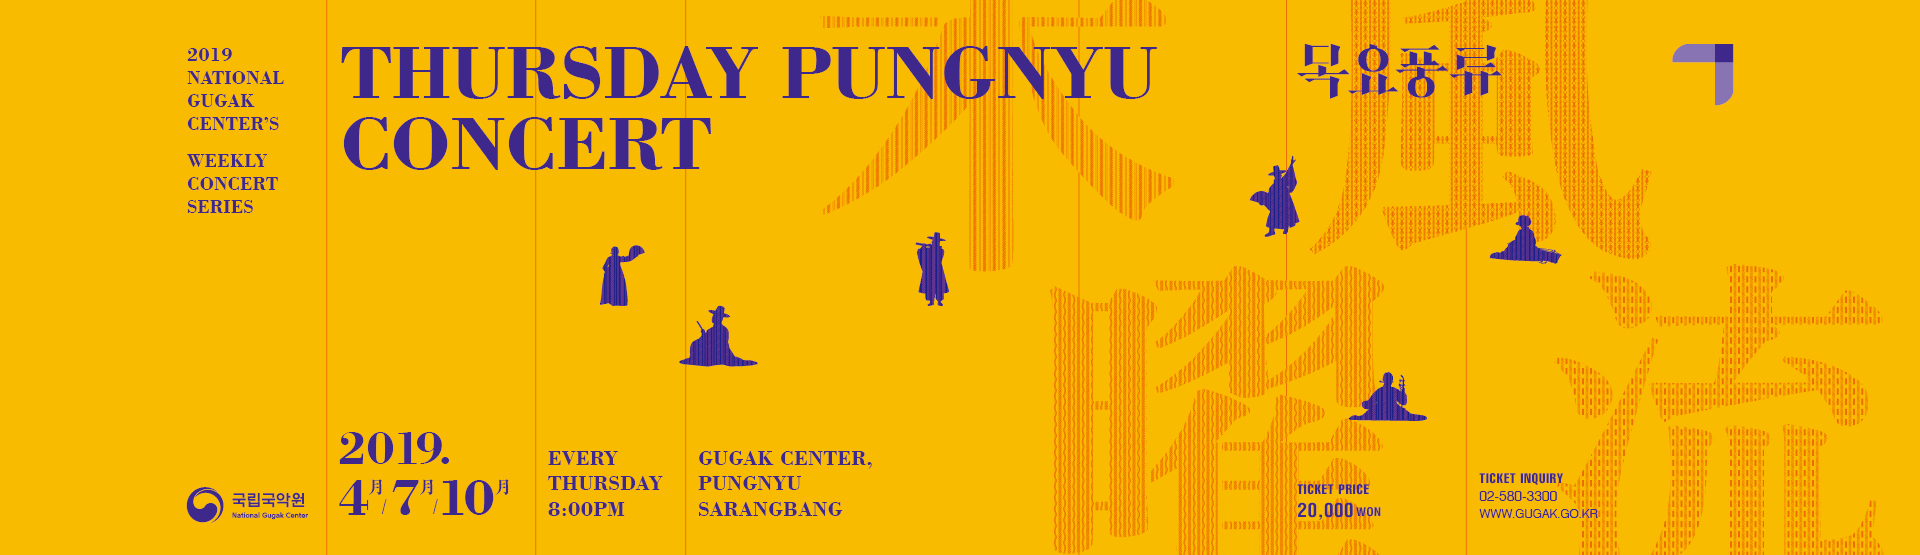 Thursday Pungnyu Concert